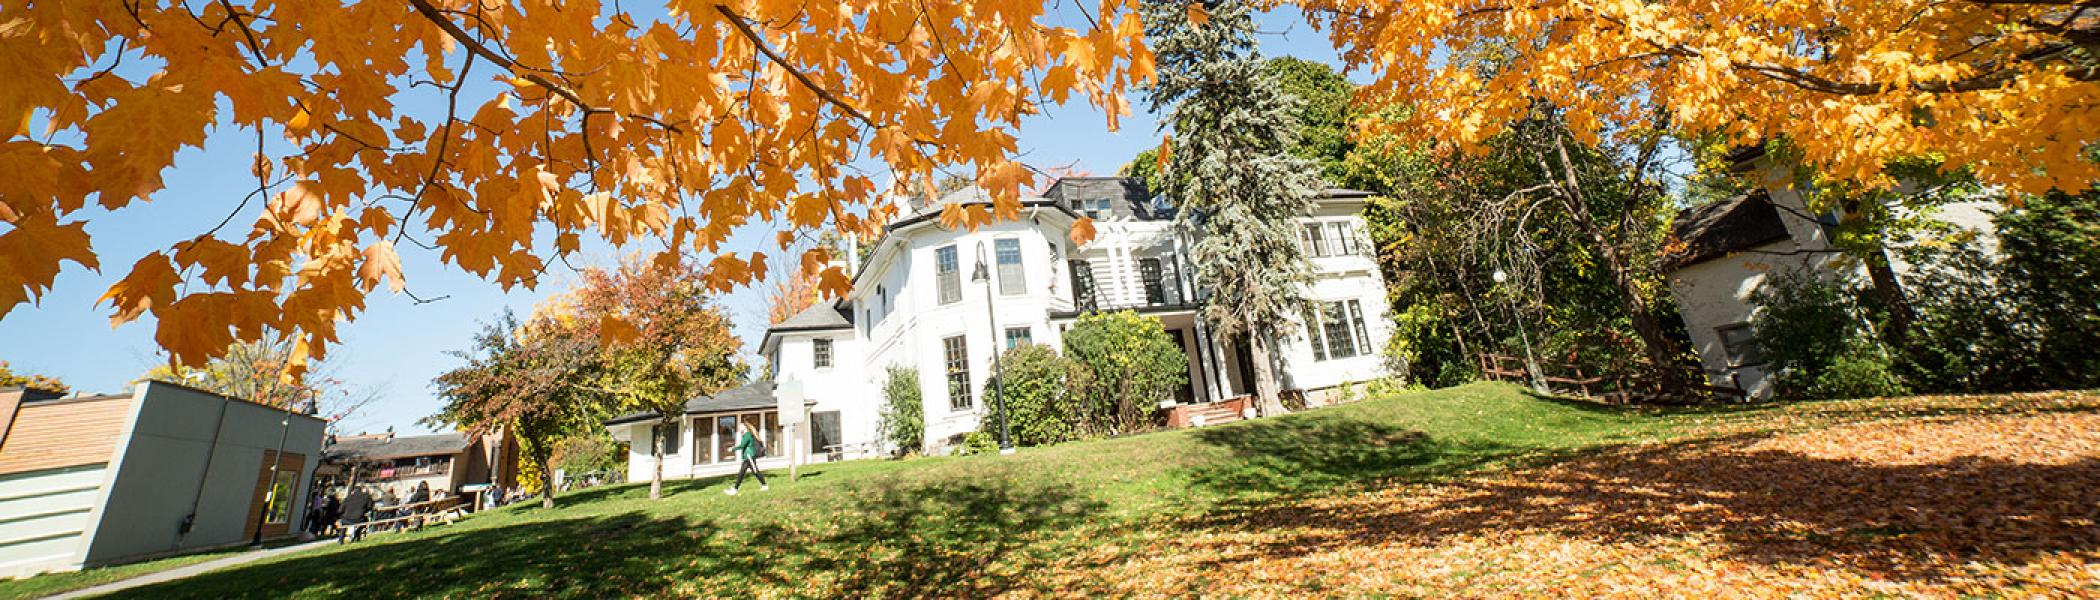 Image of Trent's Catharine Parr Traill campus during the fall.